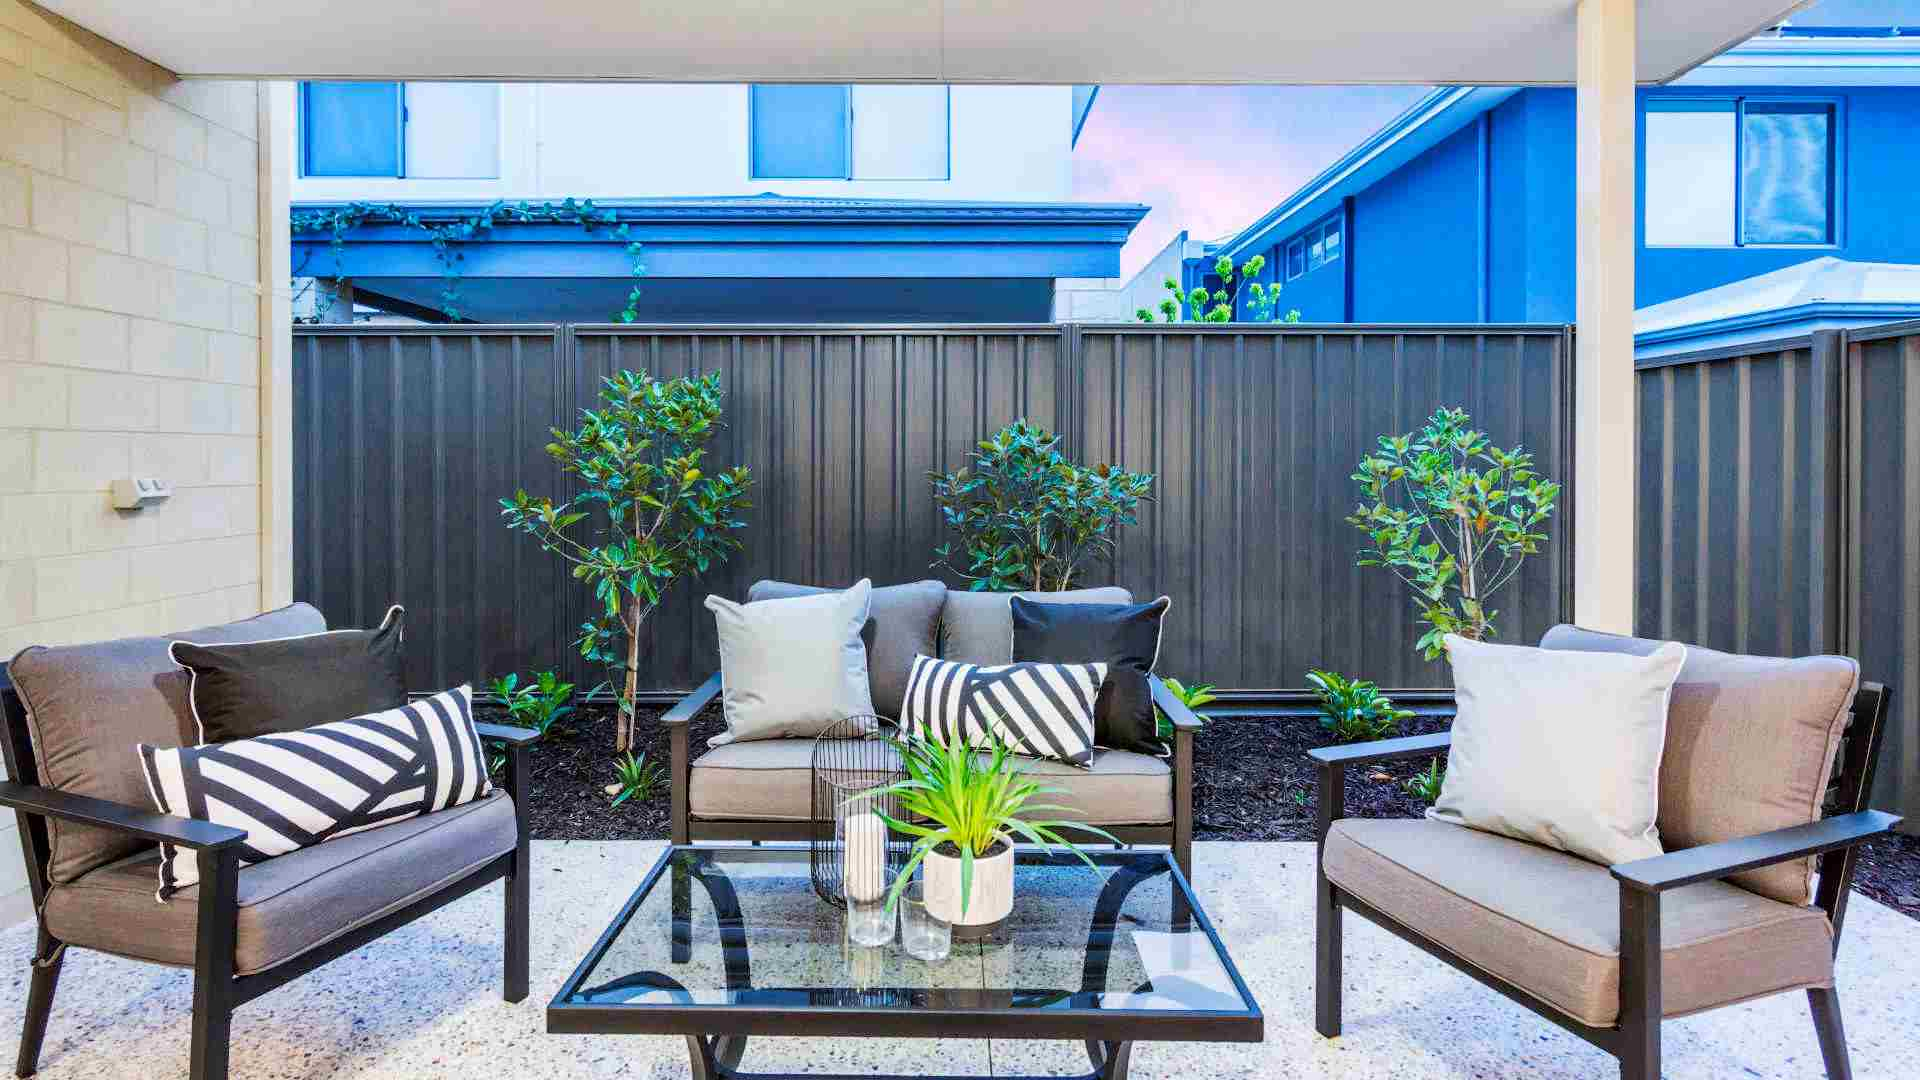 Courtyard hacks: 5 design ideas to create an outdoor oasis